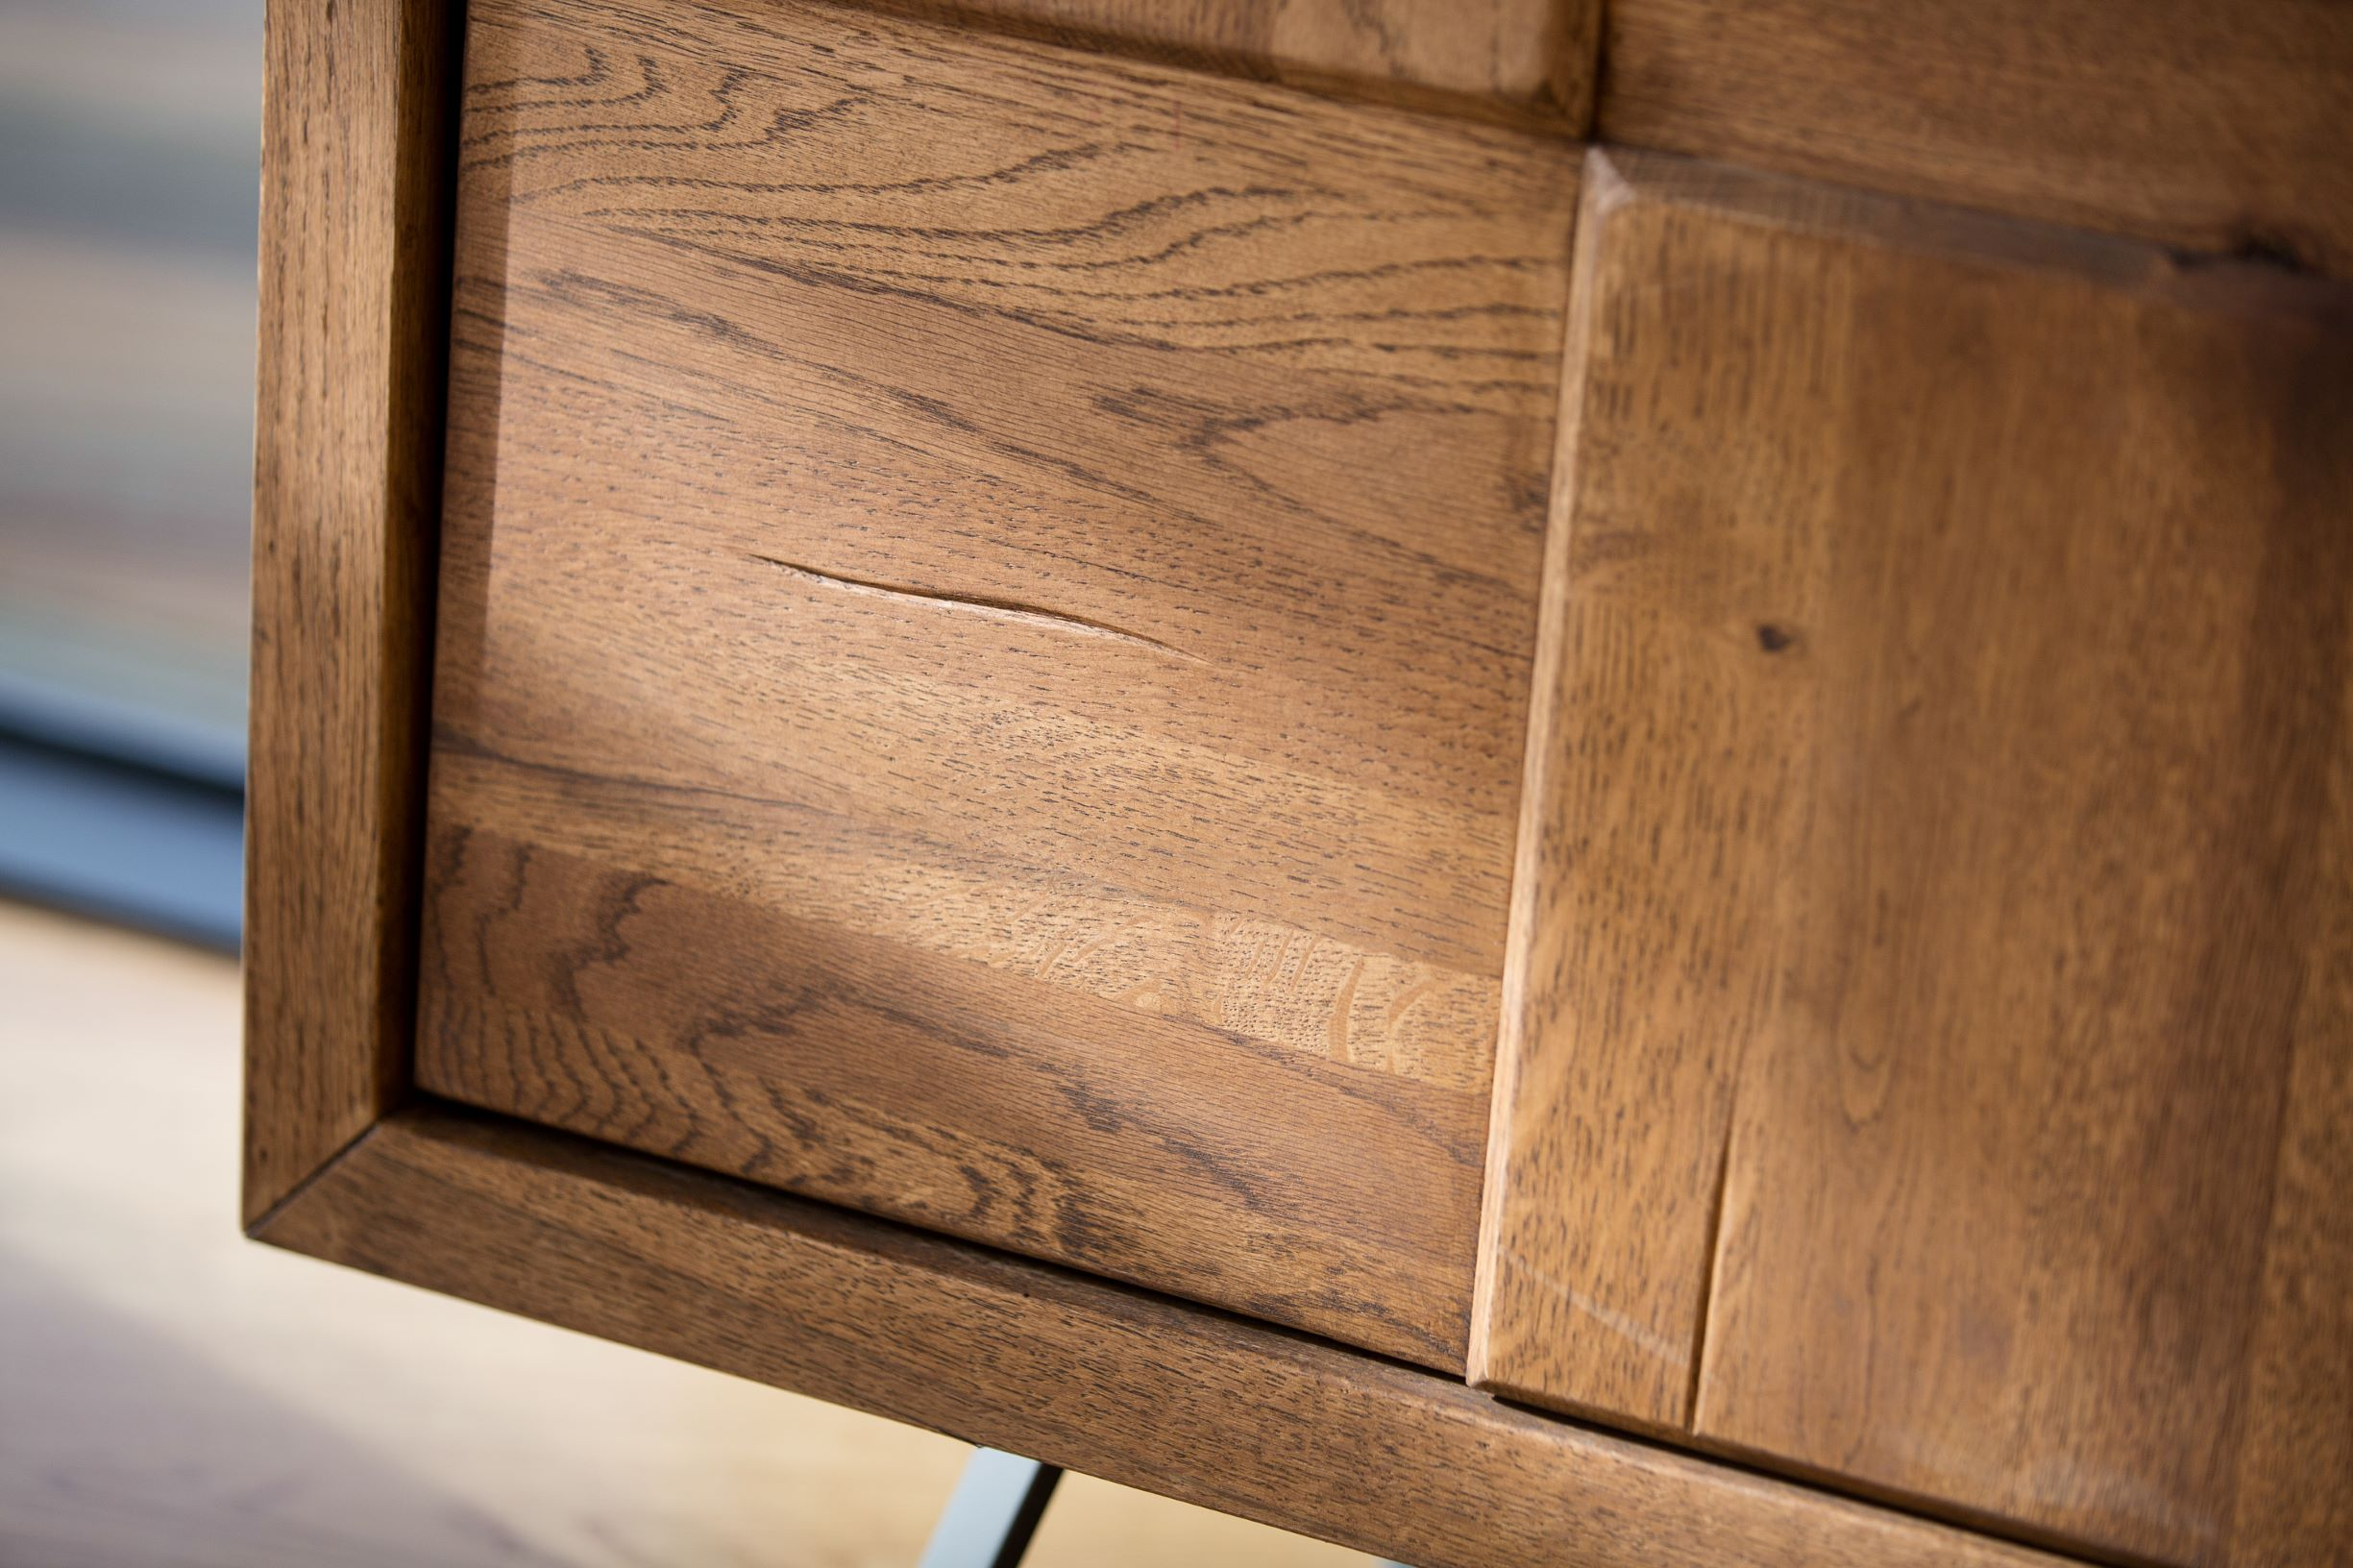 CORMAR OILED OAK LARGE SIDEBOARD - DOOR DETAIL